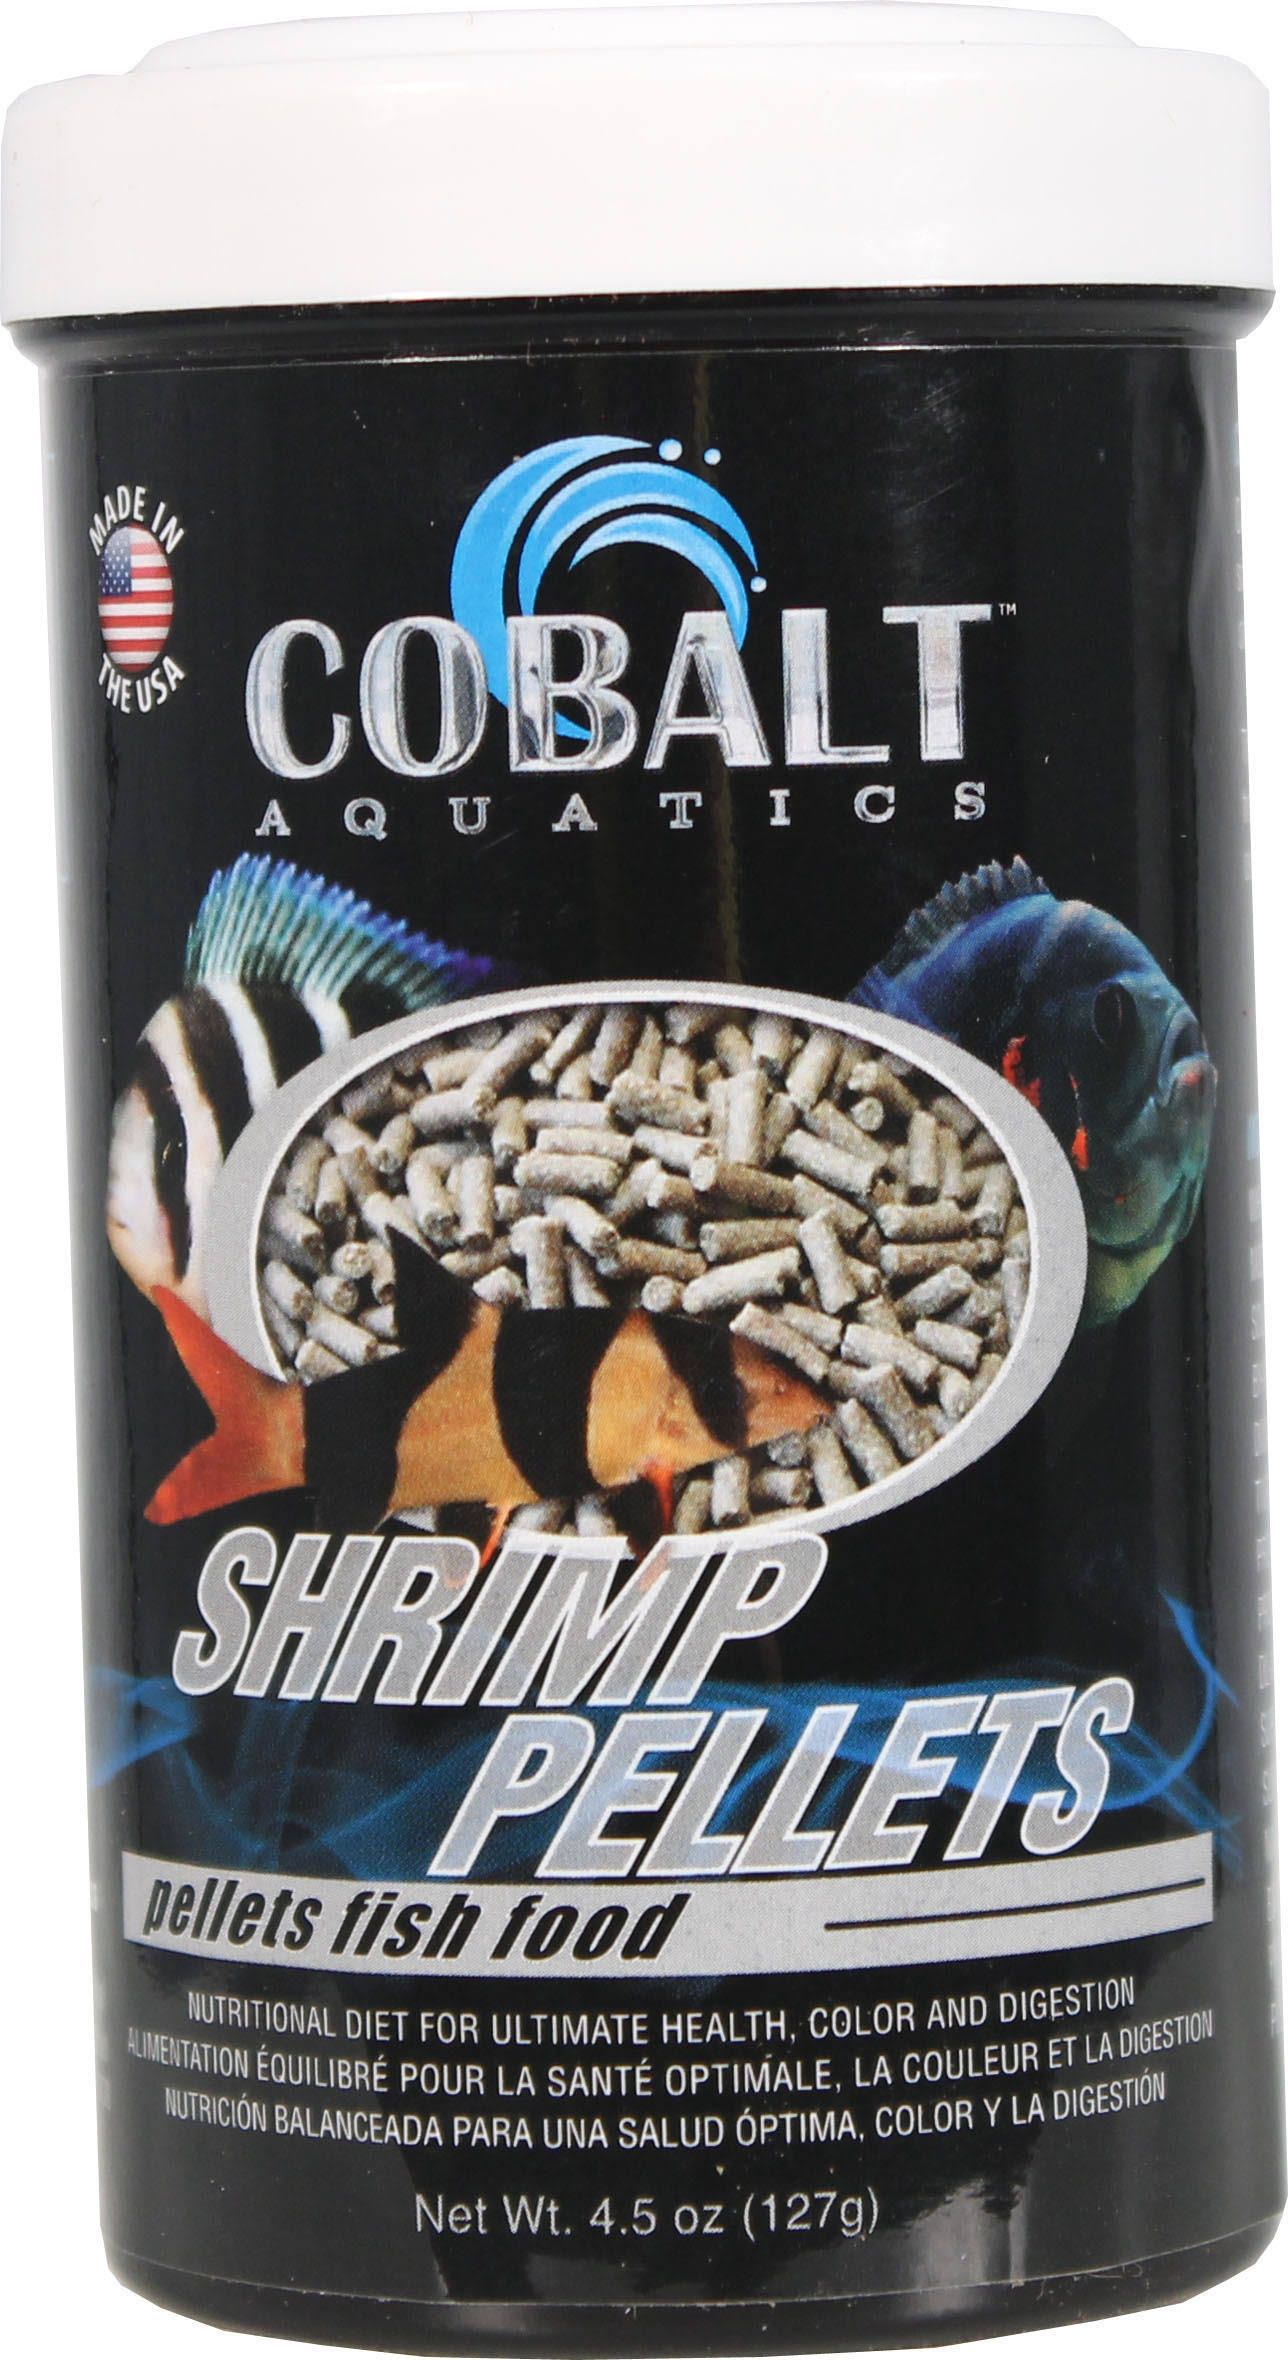 Cobalt Aquatics Shrimp Pellets Fish Food